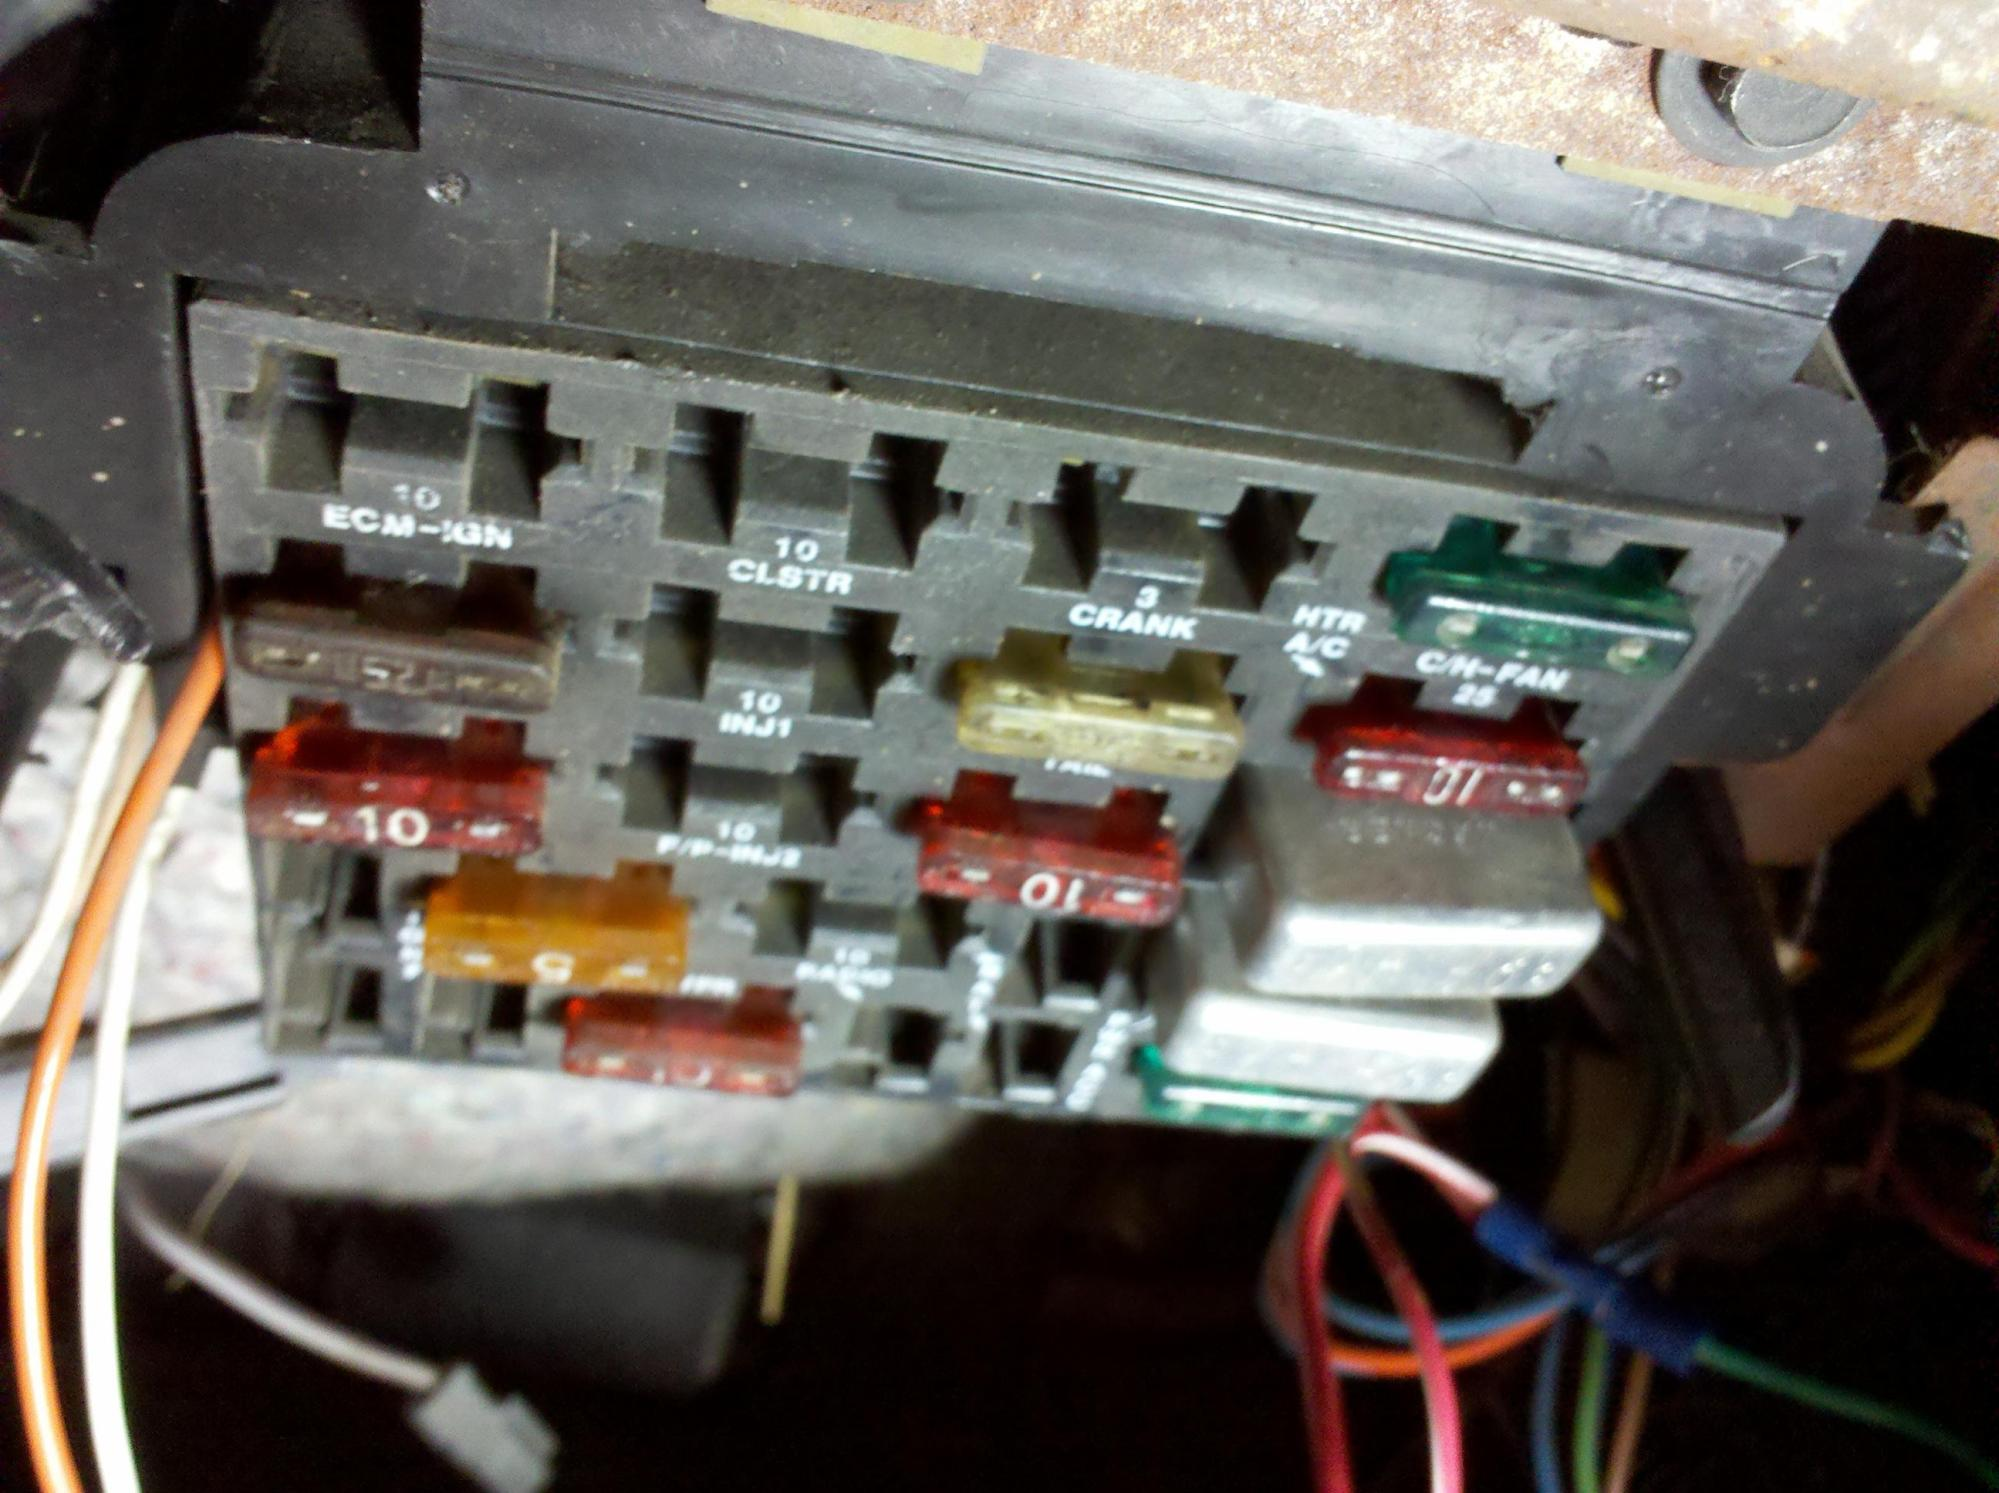 hight resolution of 91 trans am fuse box not lossing wiring diagram u2022 1991 trans am convertible 91 trans am fuse box